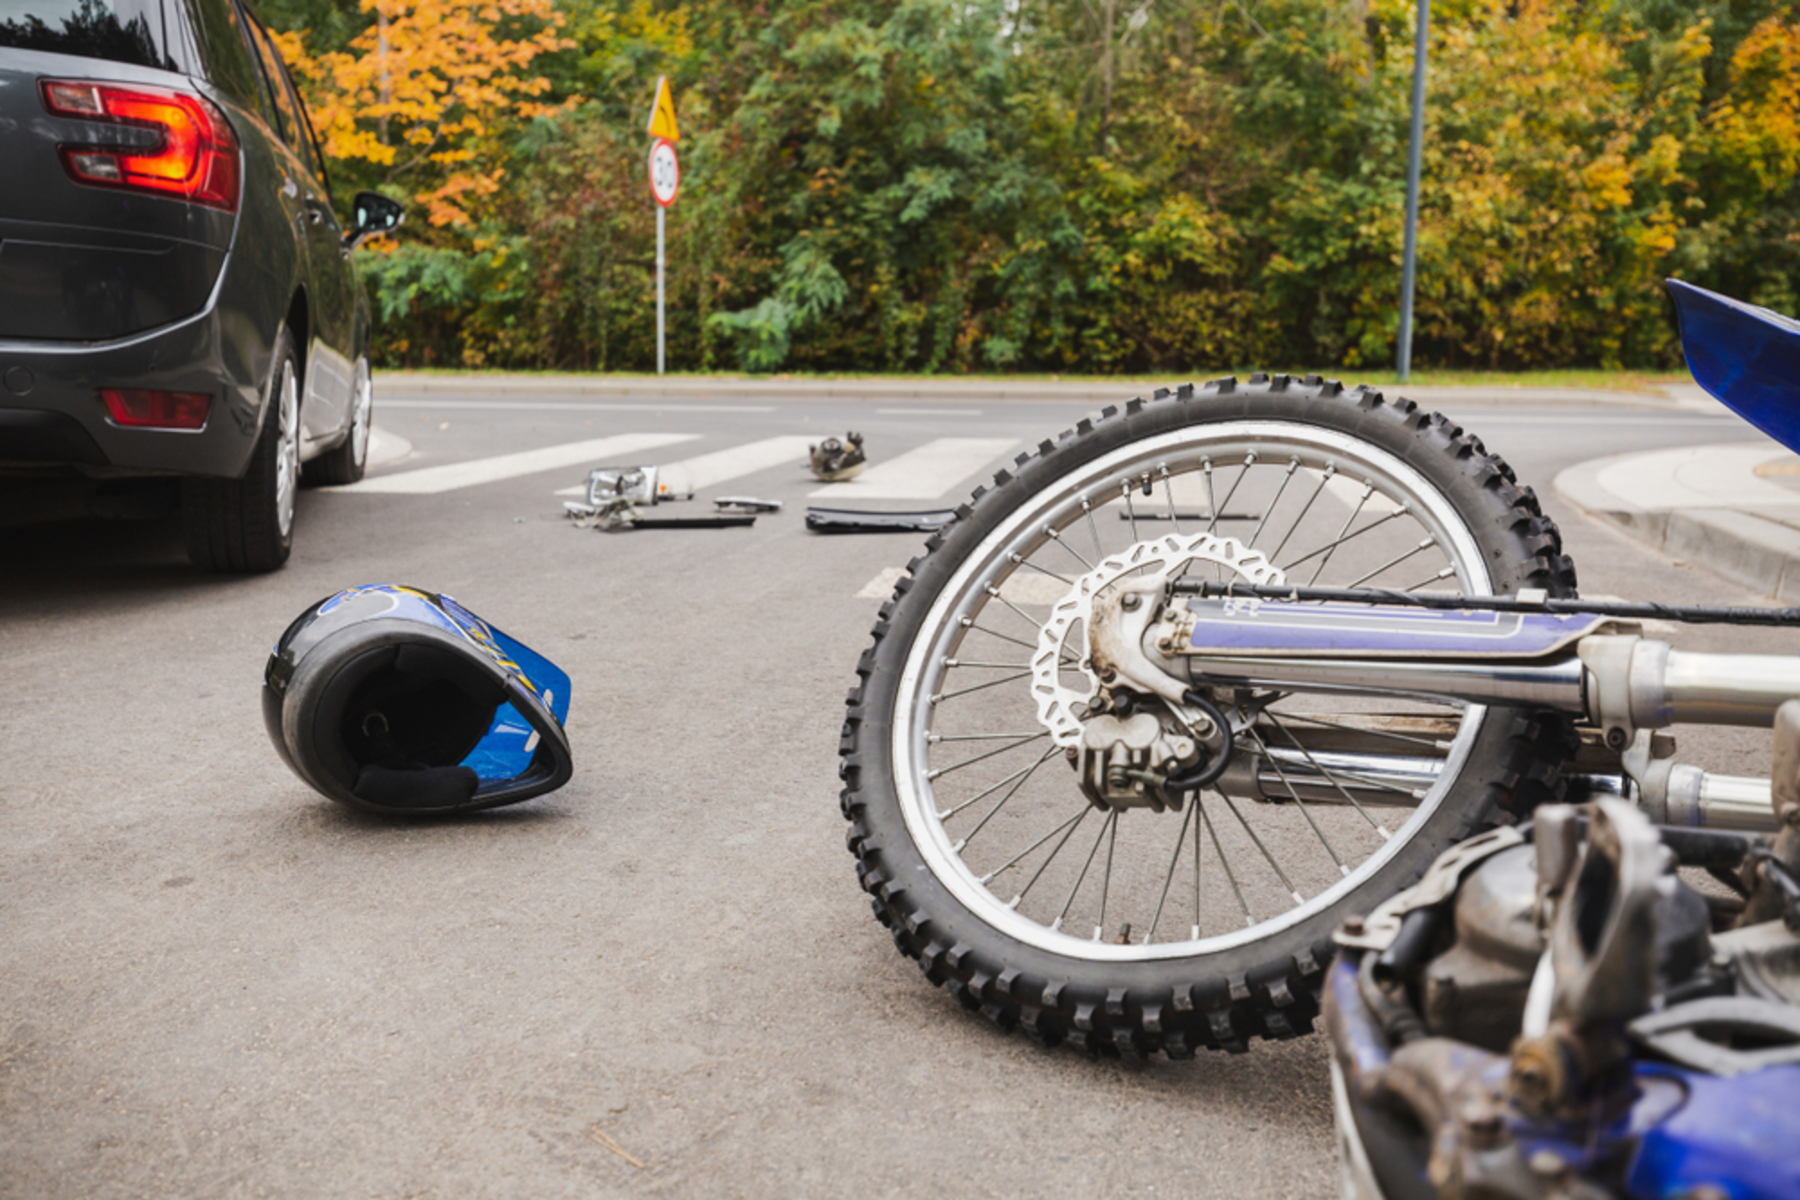 Top 5 Causes for Car and Motorcycle Collisions